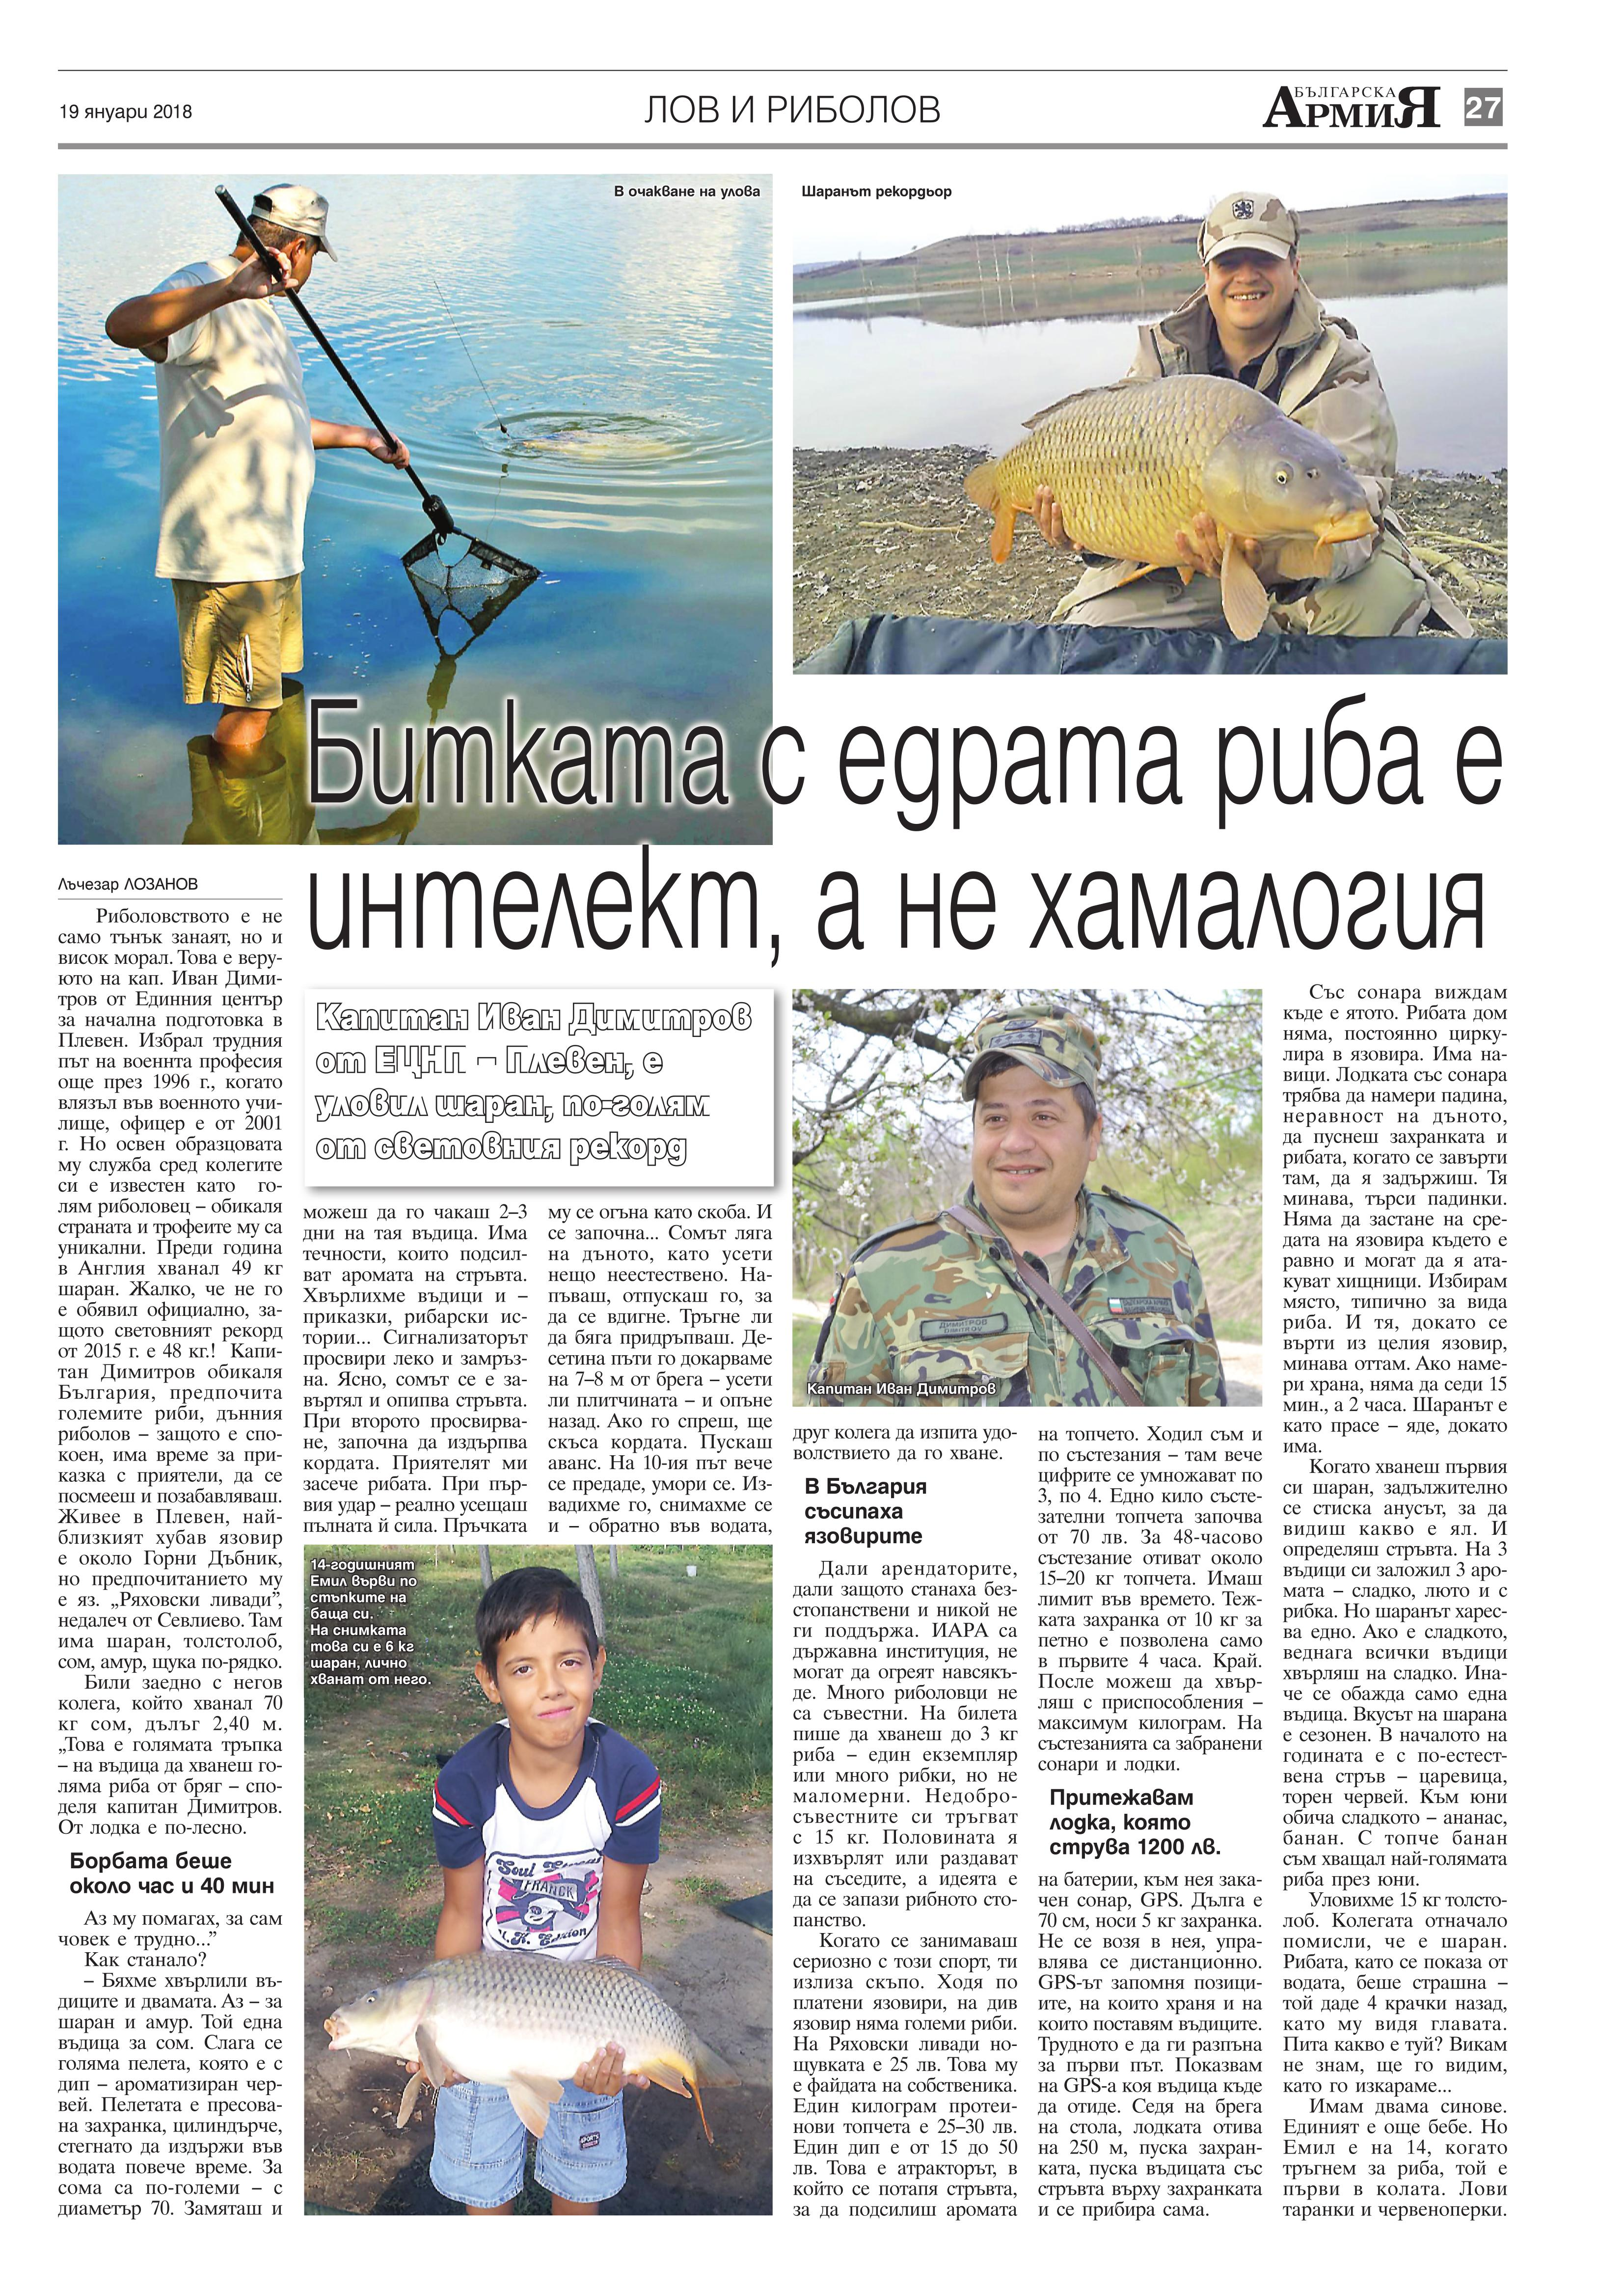 https://armymedia.bg/wp-content/uploads/2015/06/27.page1_-32.jpg